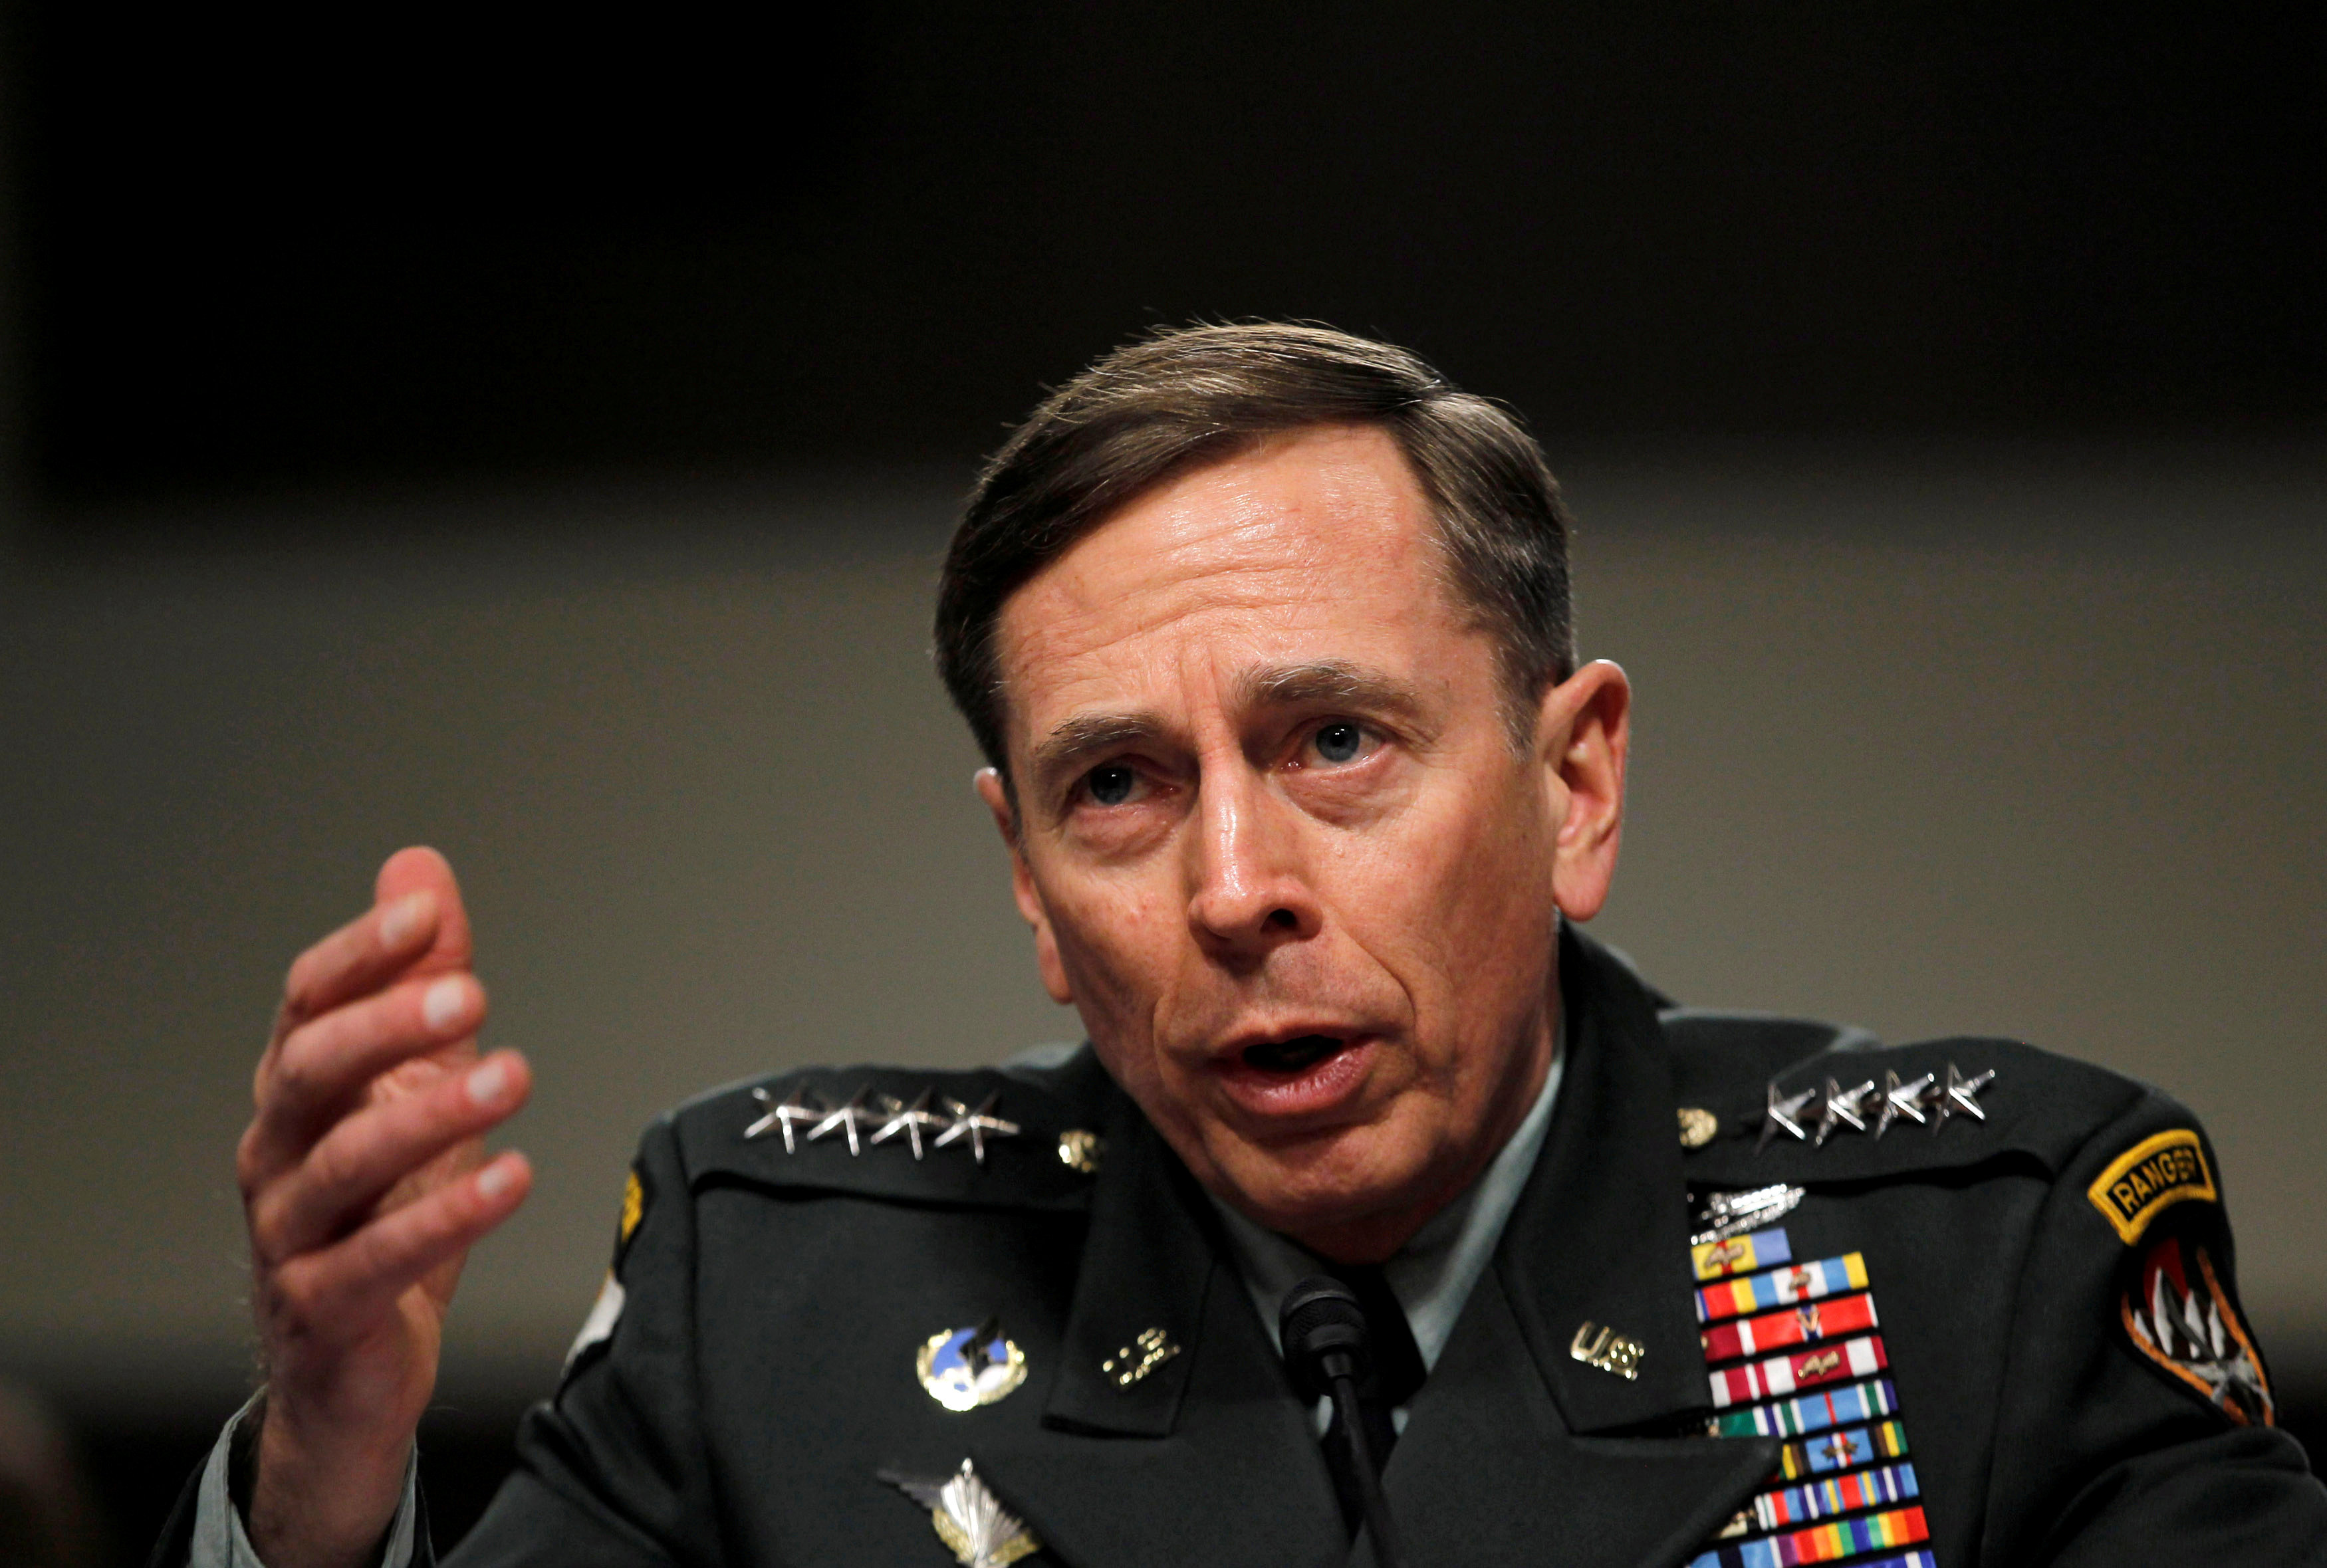 This file photo shows U.S. General David Petraeus when he was commander of the international security assistance force and commander of U.S. Forces in Afghanistan, testifying at a Senate Armed Services committee hearing on the situation in Afghanistan in 2011. Photo: Reuters